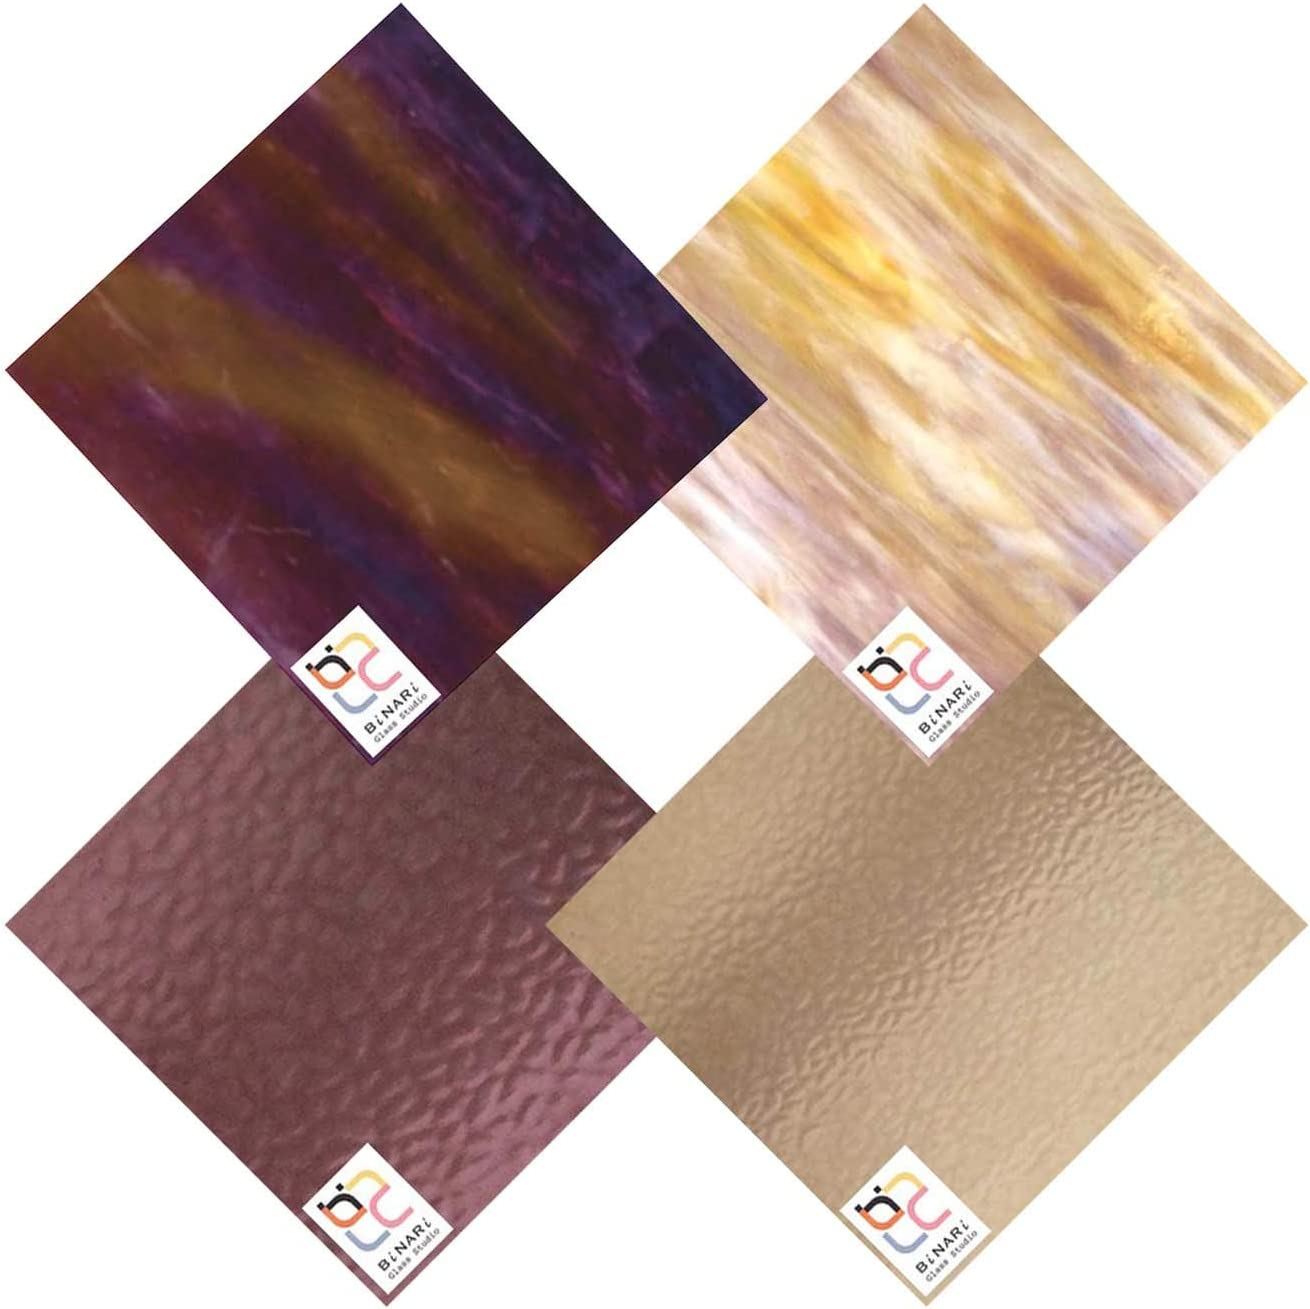 Wissmach 4 Sheet Mixed Color Pack Stained All stores are sold Variety Glass Super sale period limited Grape